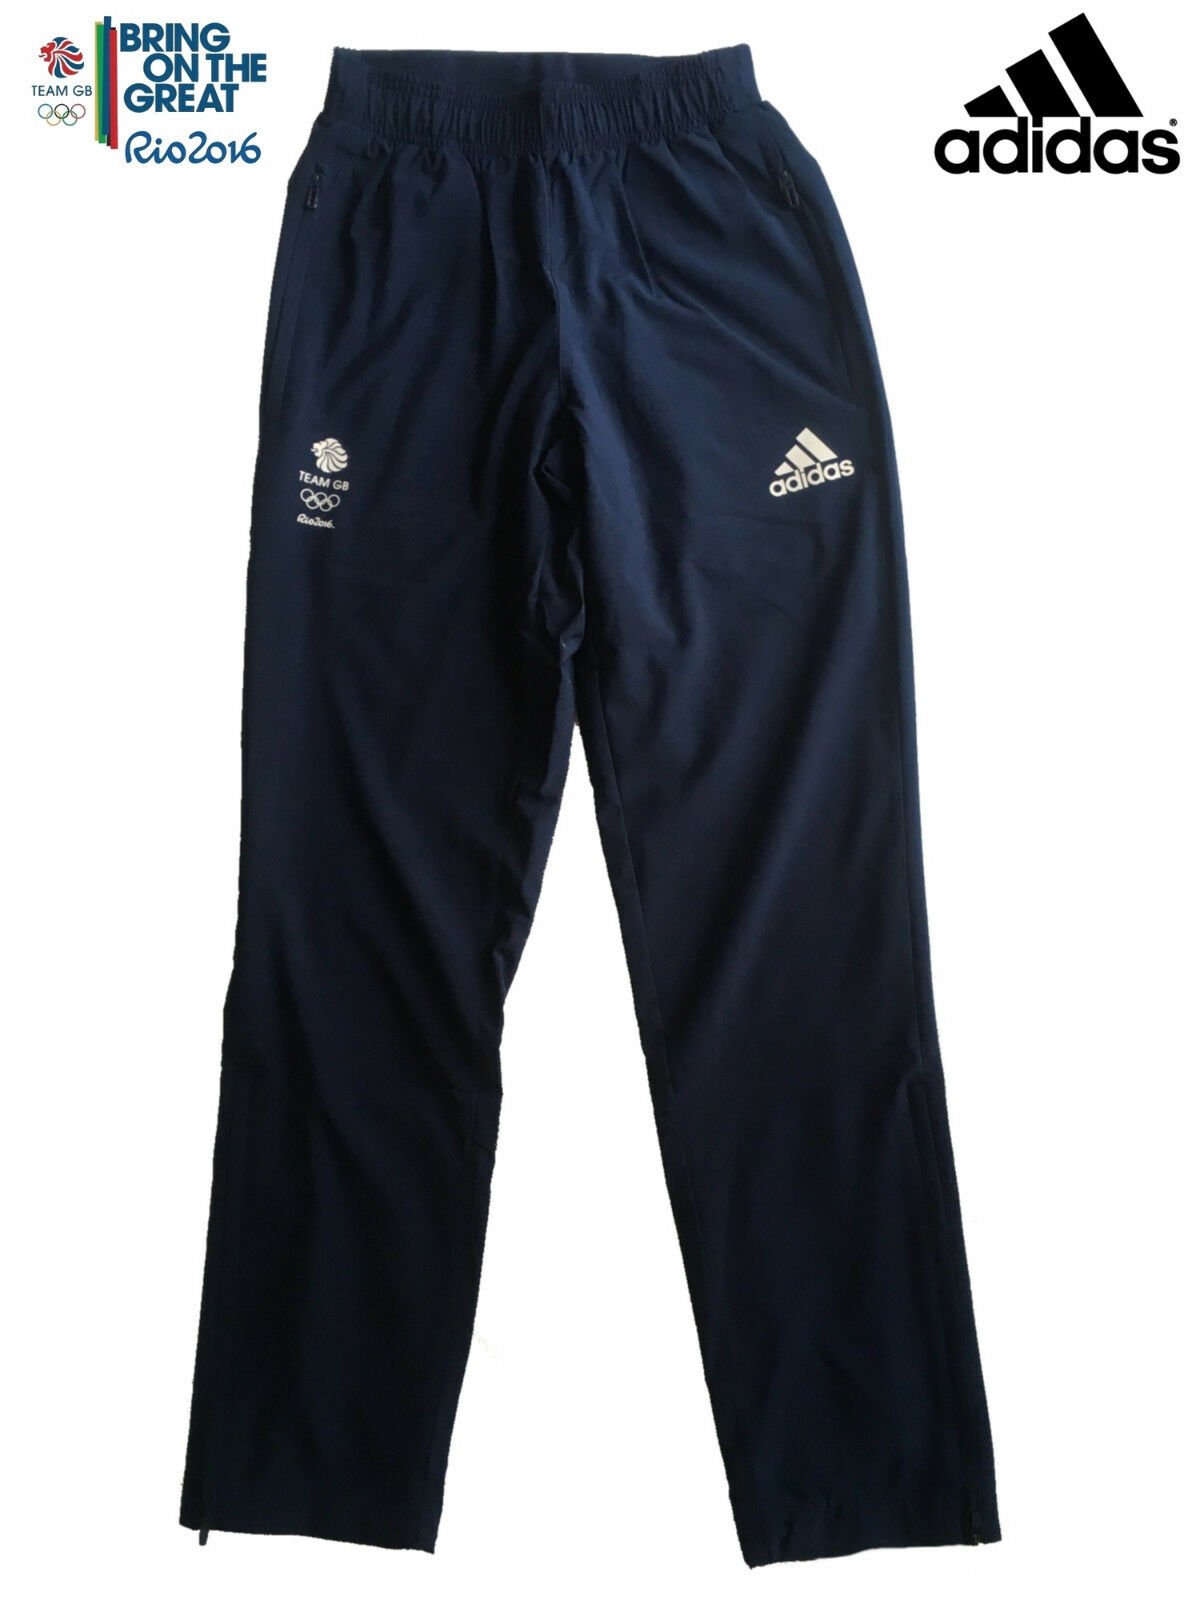 ADIDAS TEAM GB RIO 2016 ELITE ATHLETE OLYMPIC PRESENTATION PANTS Size 40 L